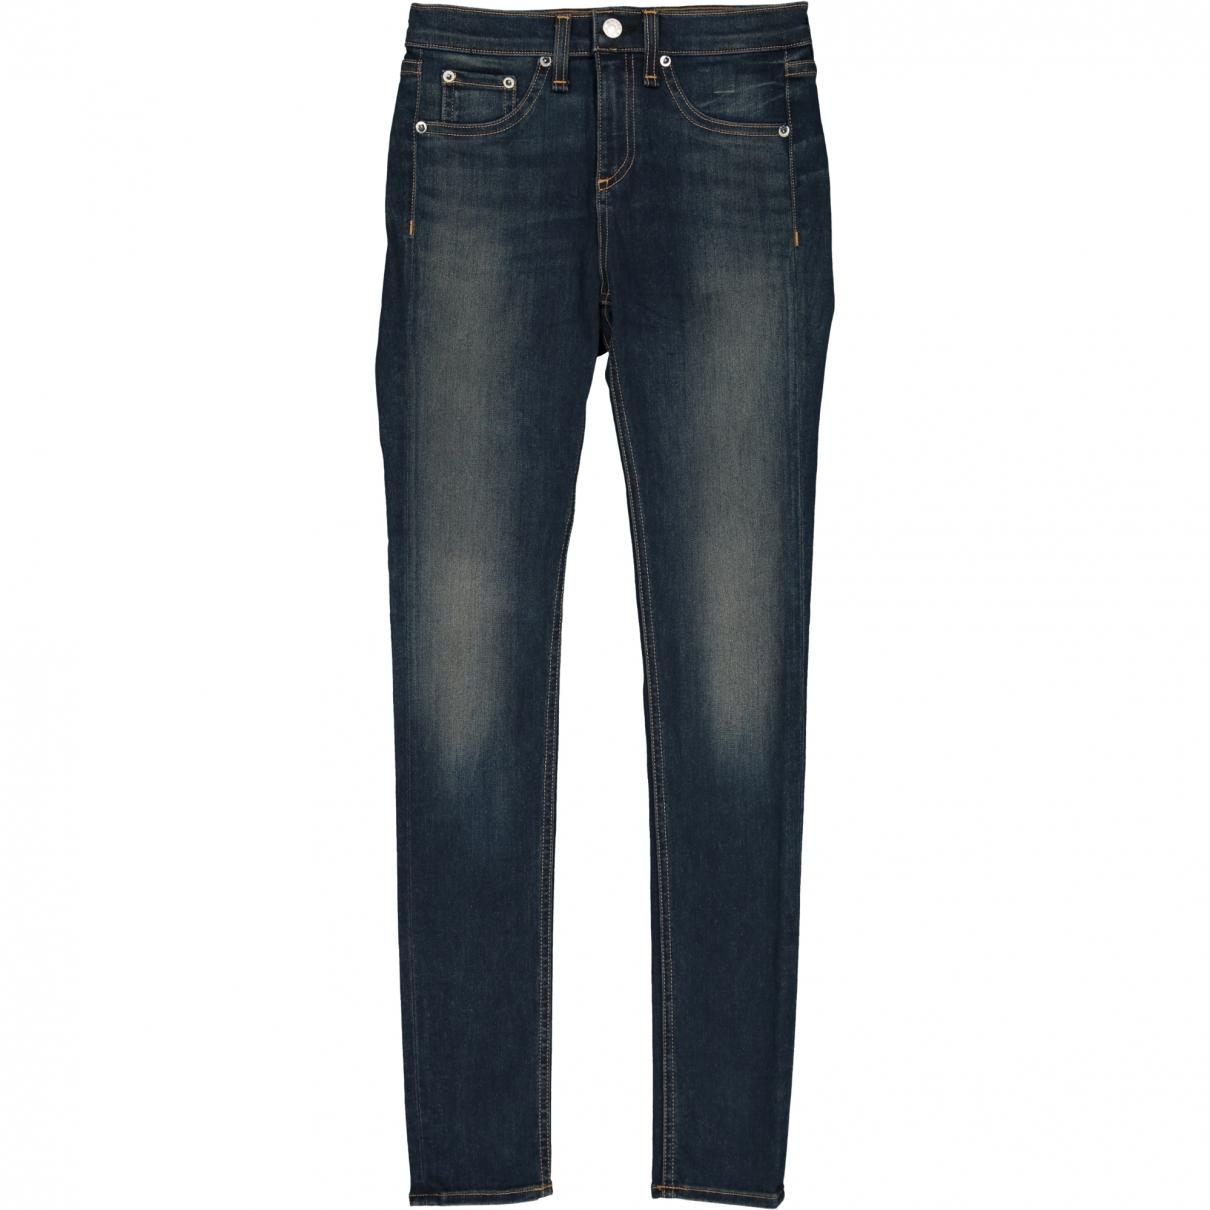 a148be28dd Rag   Bone. Women s Blue Cotton Jeans.  125 From Vestiaire Collective